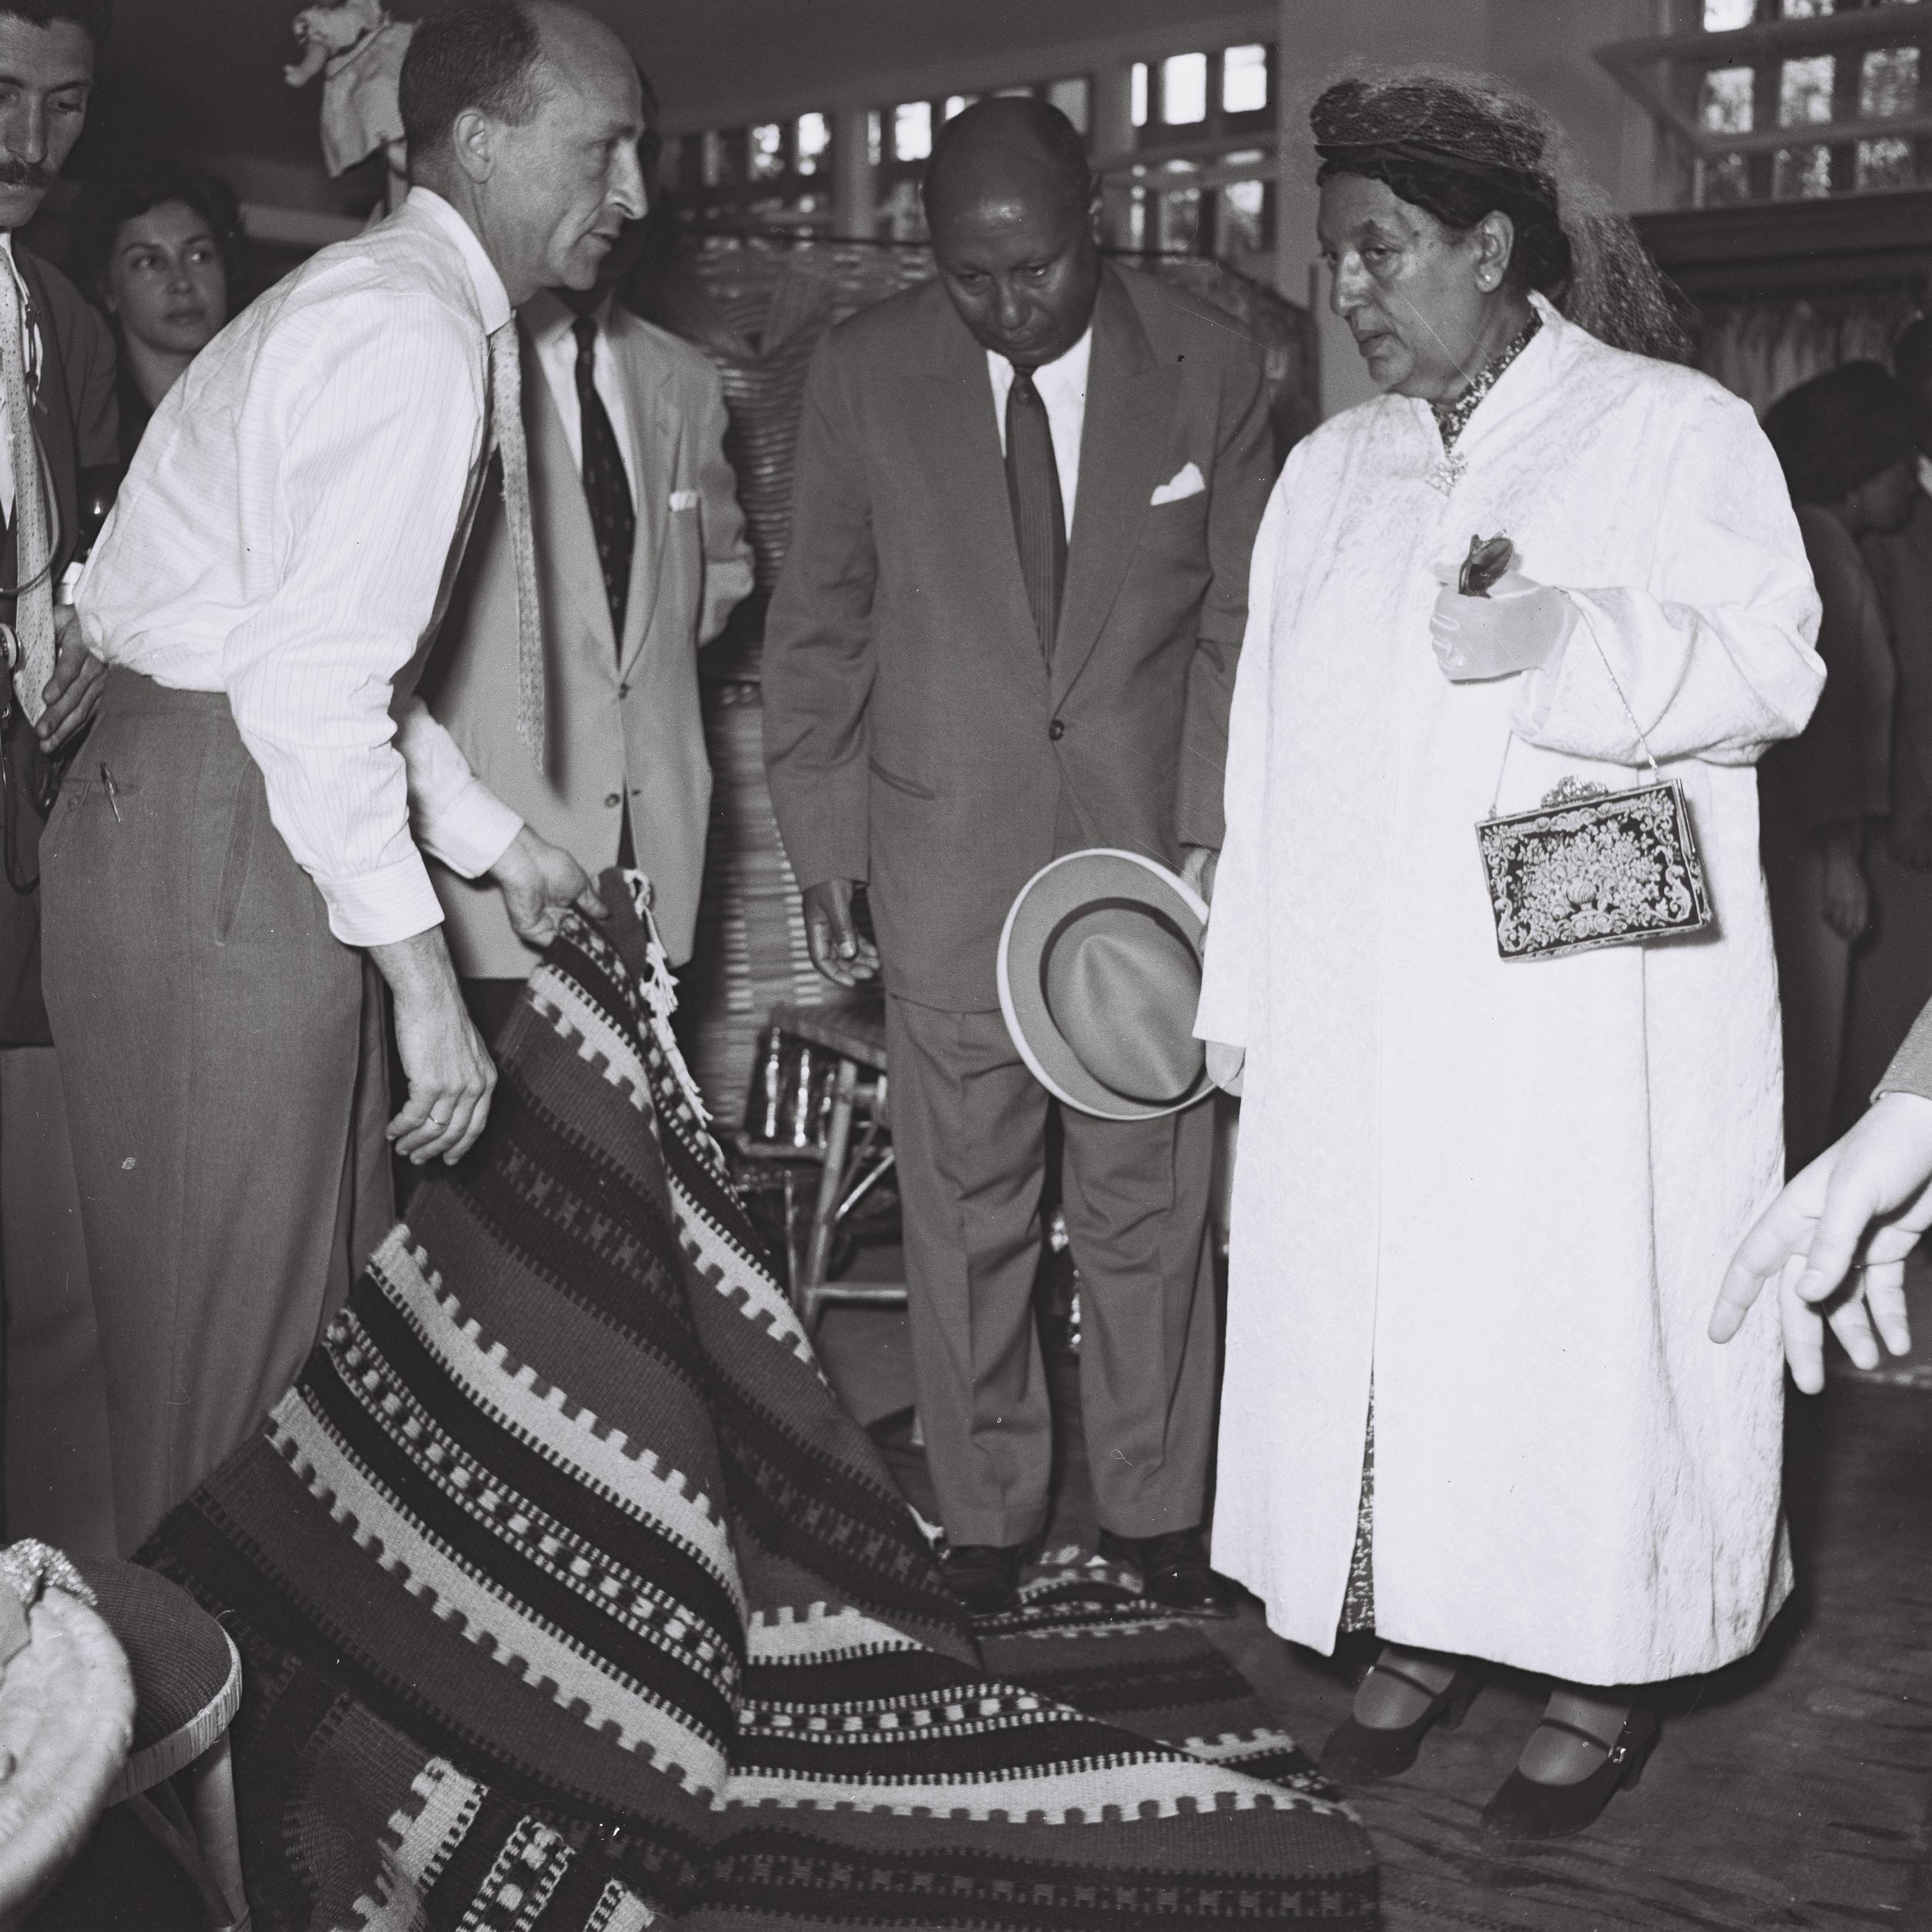 Empress Manon, the wife of Haile Selassie of Ethiopia, who came to Israel for a private visit at 'Maskit' Showroom in Tel Aviv.